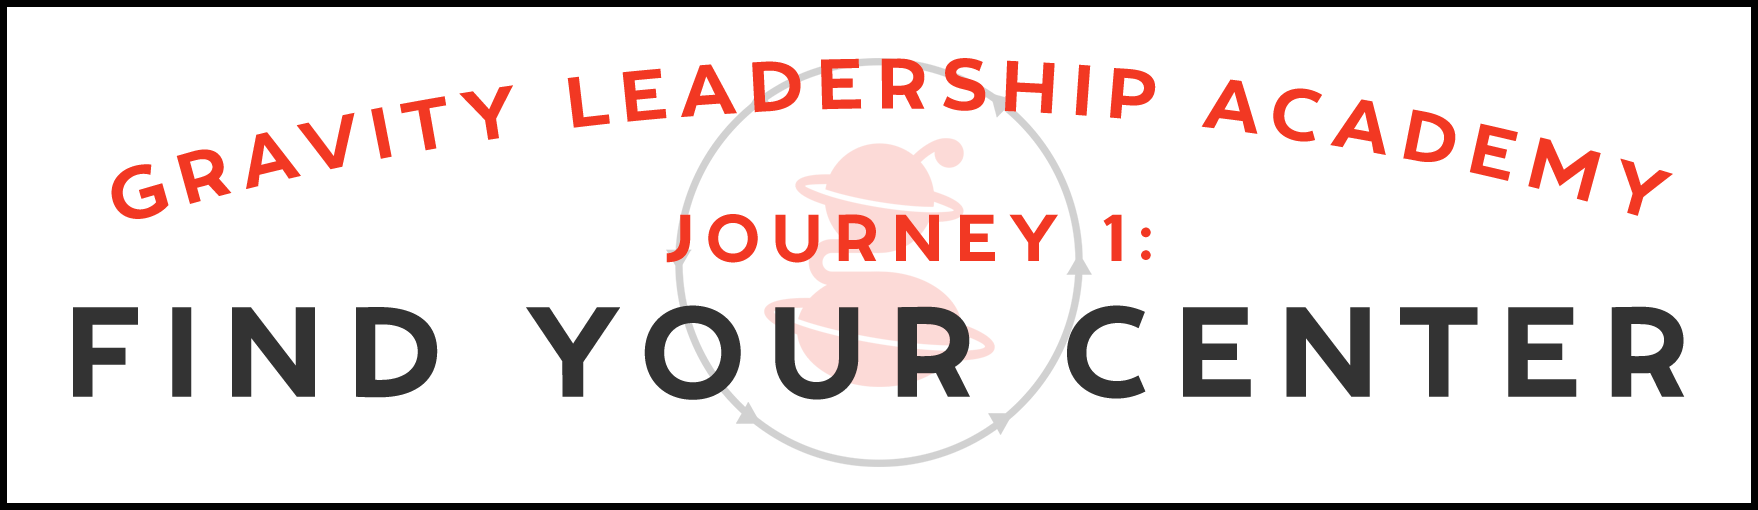 Gravity Leadership Academy Journey 1: Find Your Center